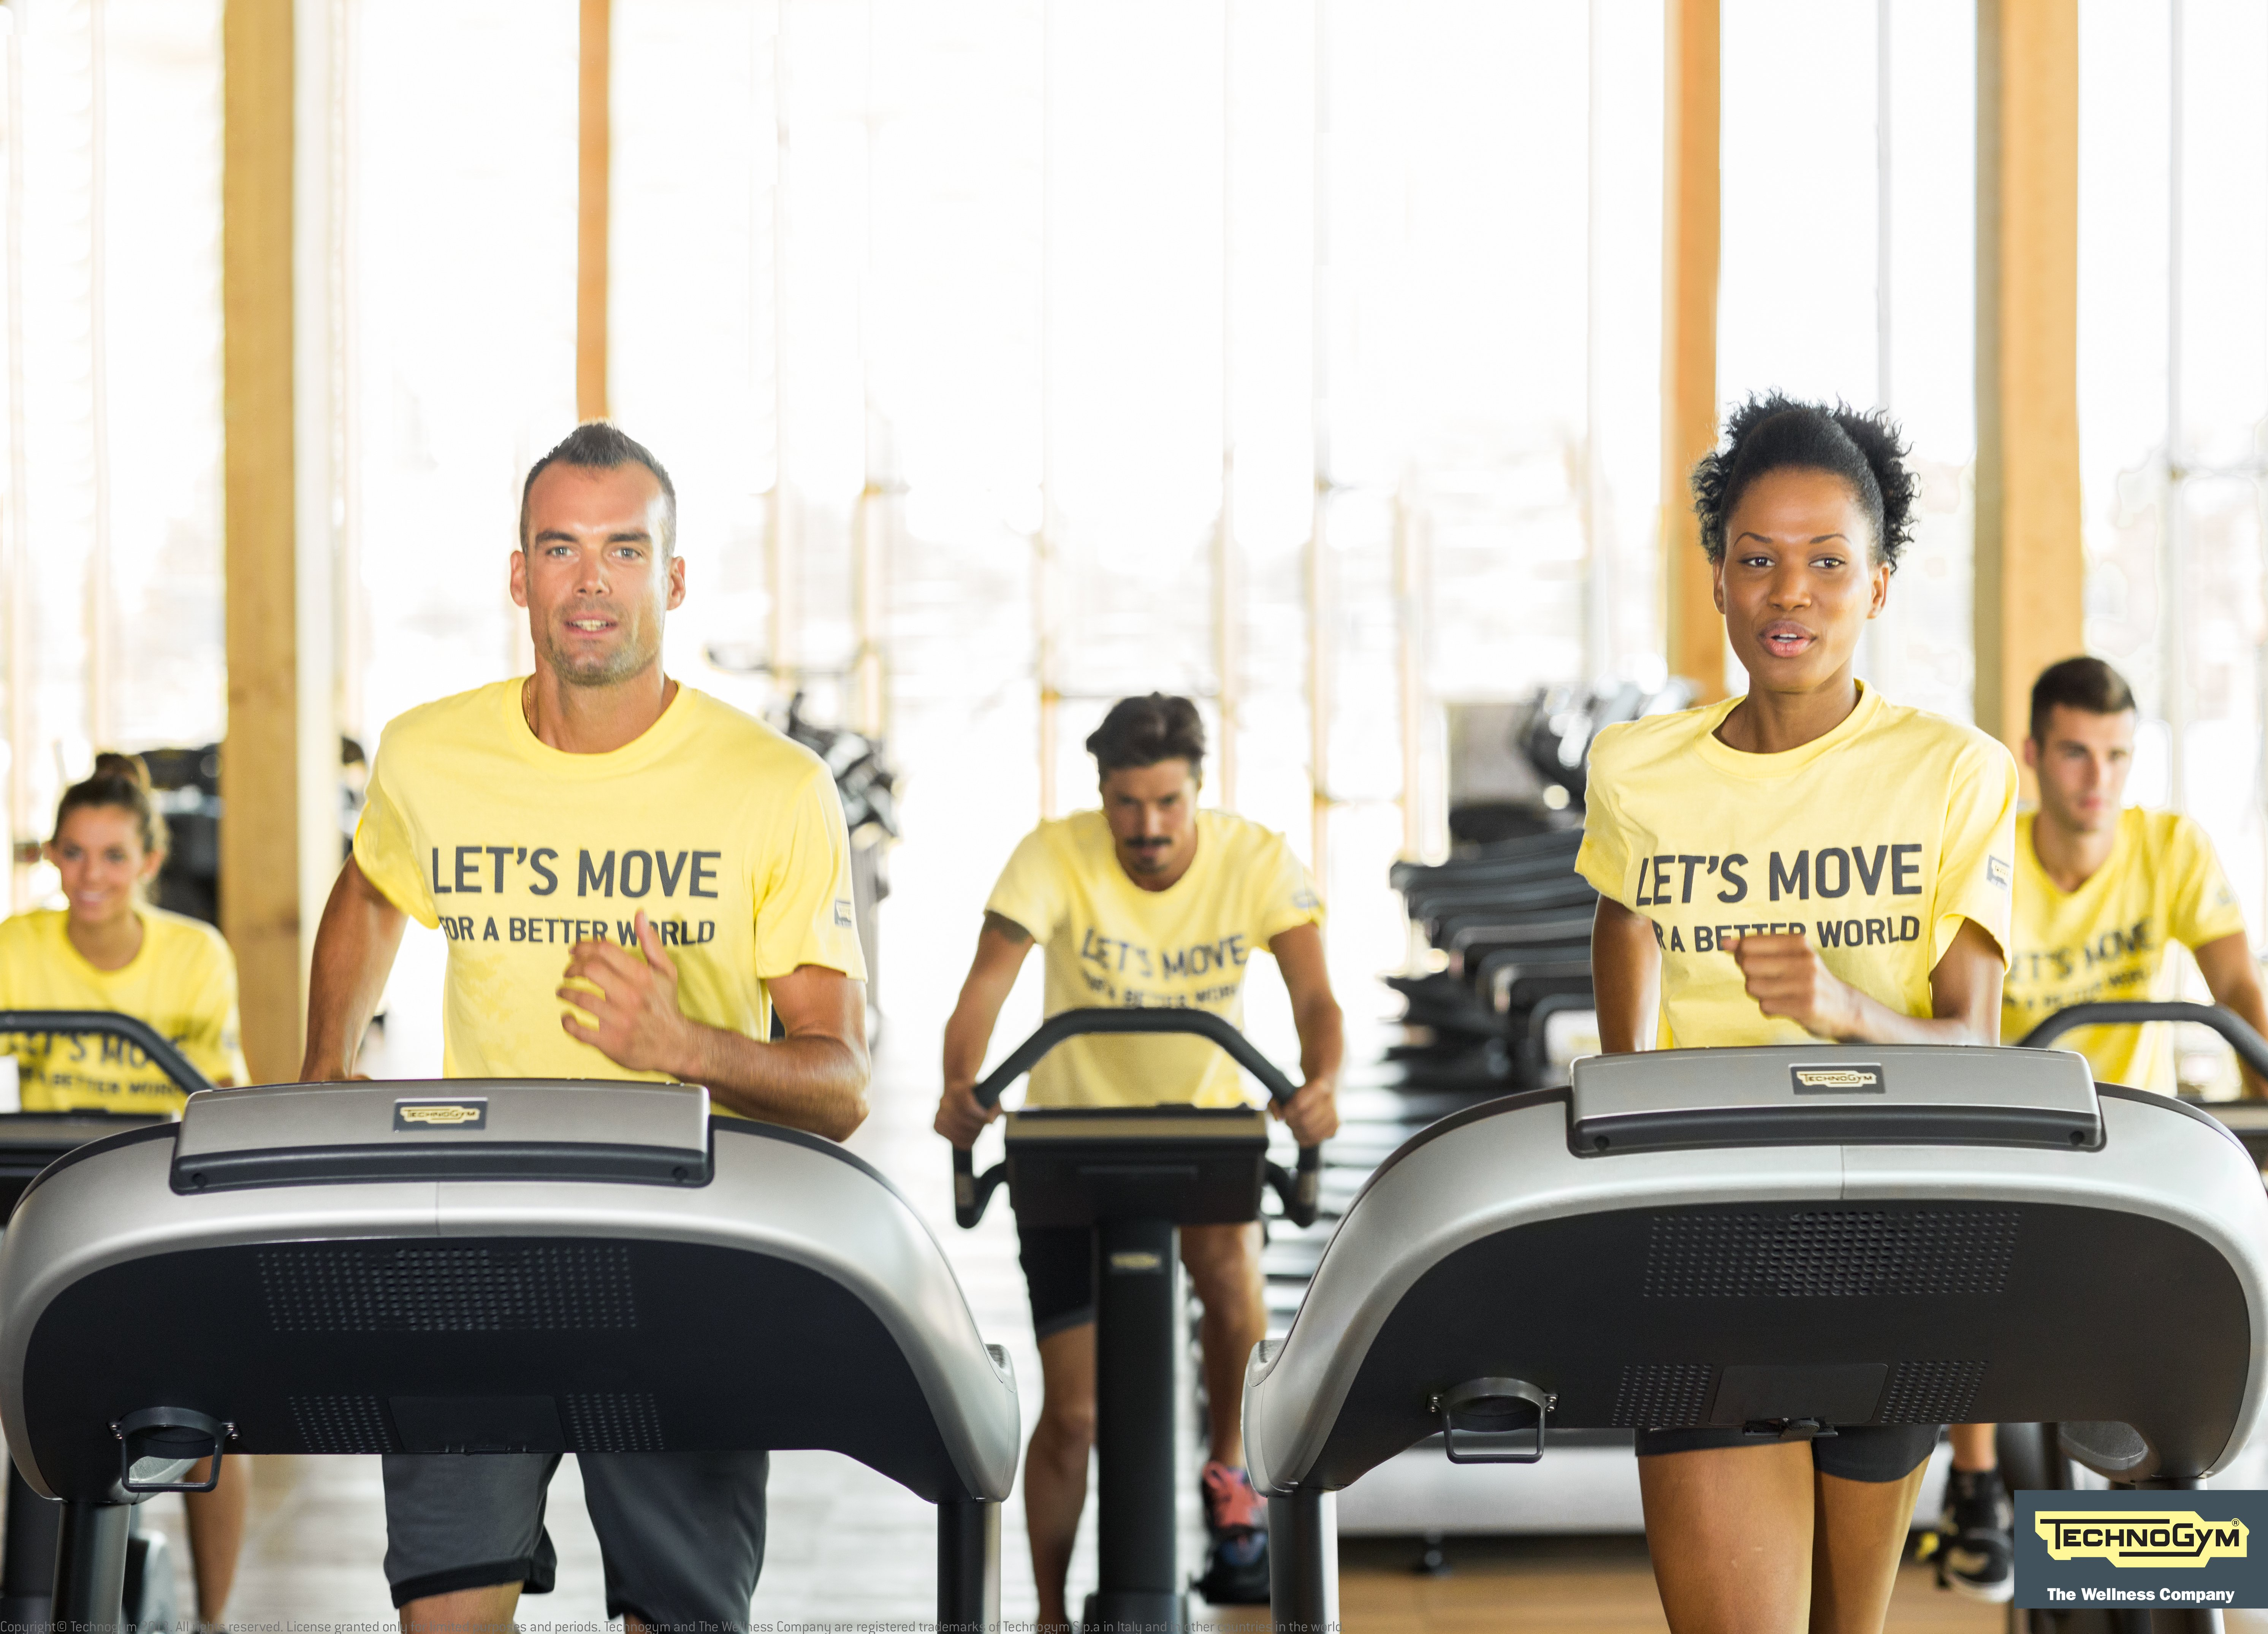 Record results for Technogym Let's Move For a Better World social campaign